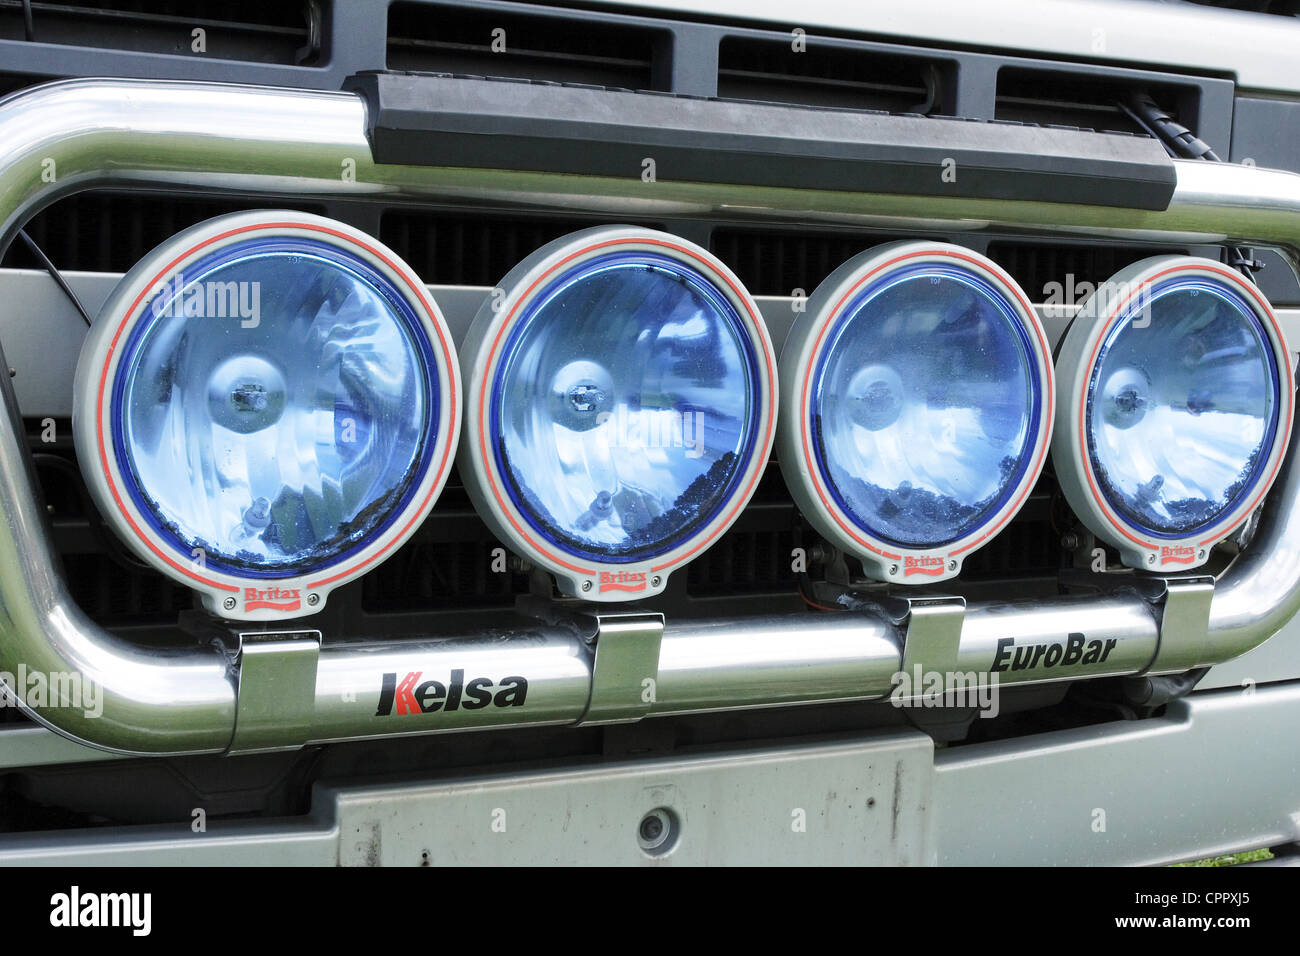 4 Spotlights mounted on the front of a commercial vehicle. - Stock Image